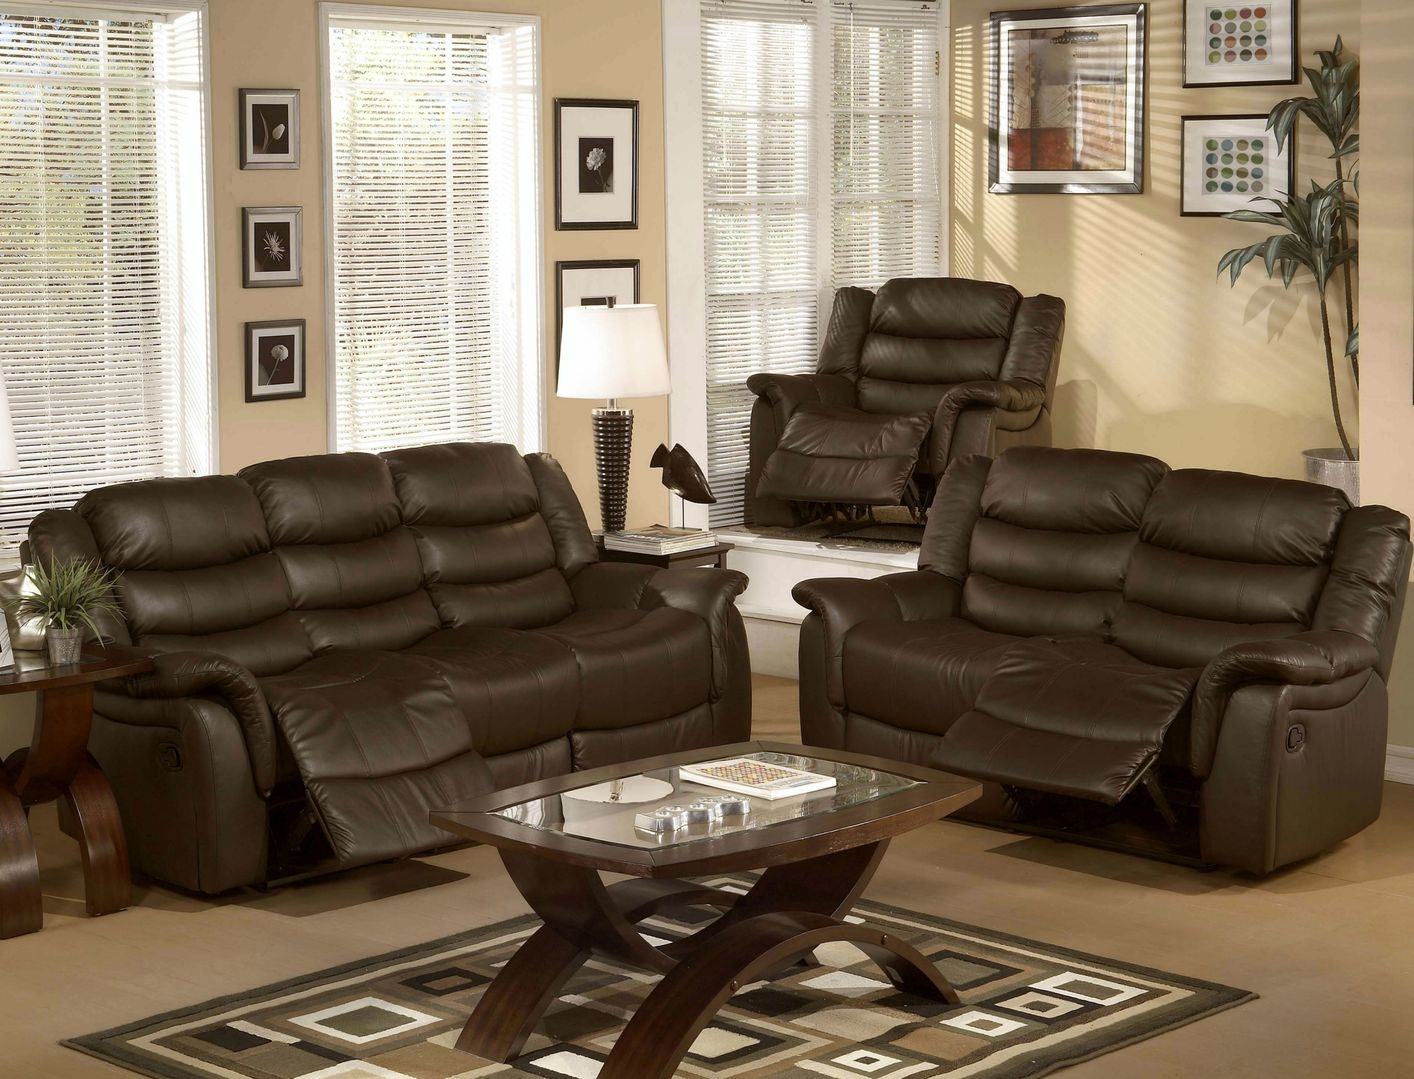 Durablend 94202 Sofa Loveseat And Chair Set Sofas Throughout Sofa Throughout Sofa And Chair Set (Image 6 of 15)